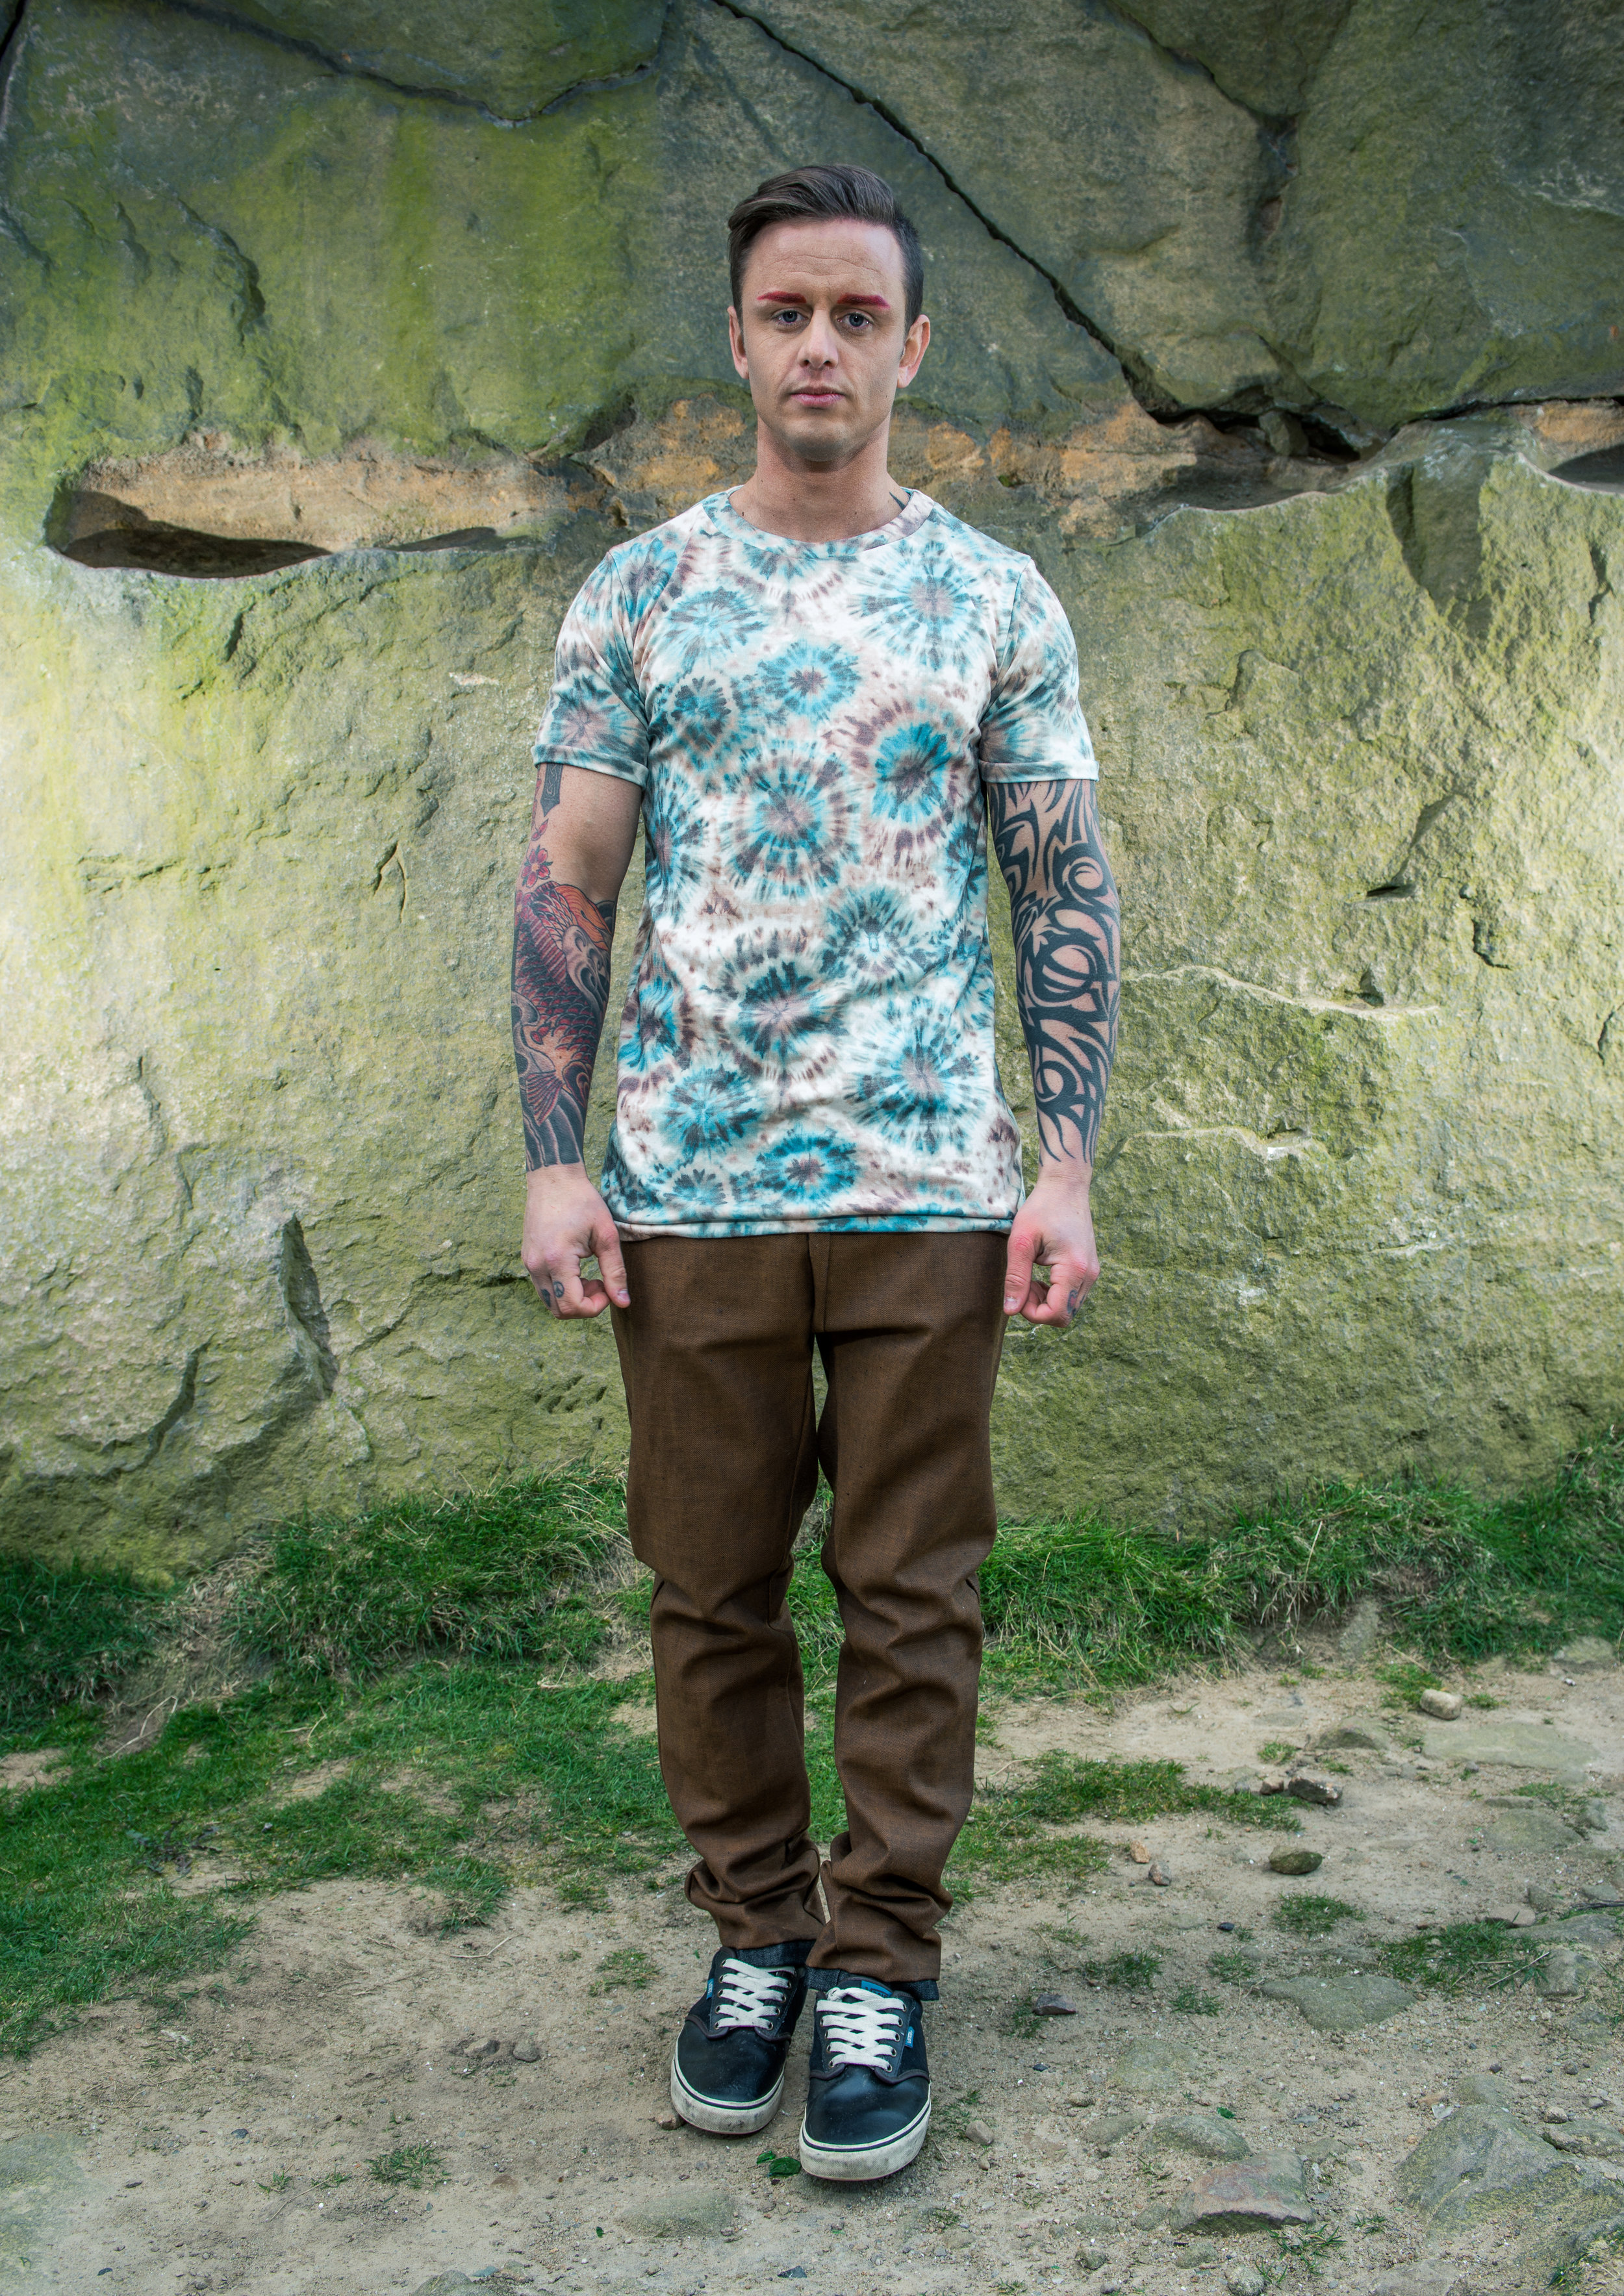 zaramia-ava-zaramiaava-leeds-fashion-designer-ethical-sustainable-tailored-minimalist-denim-brown-print-basic-fitted-jersey-tshirt-top-trousers-versatile-drape-cowl-styling-menswear-models-11